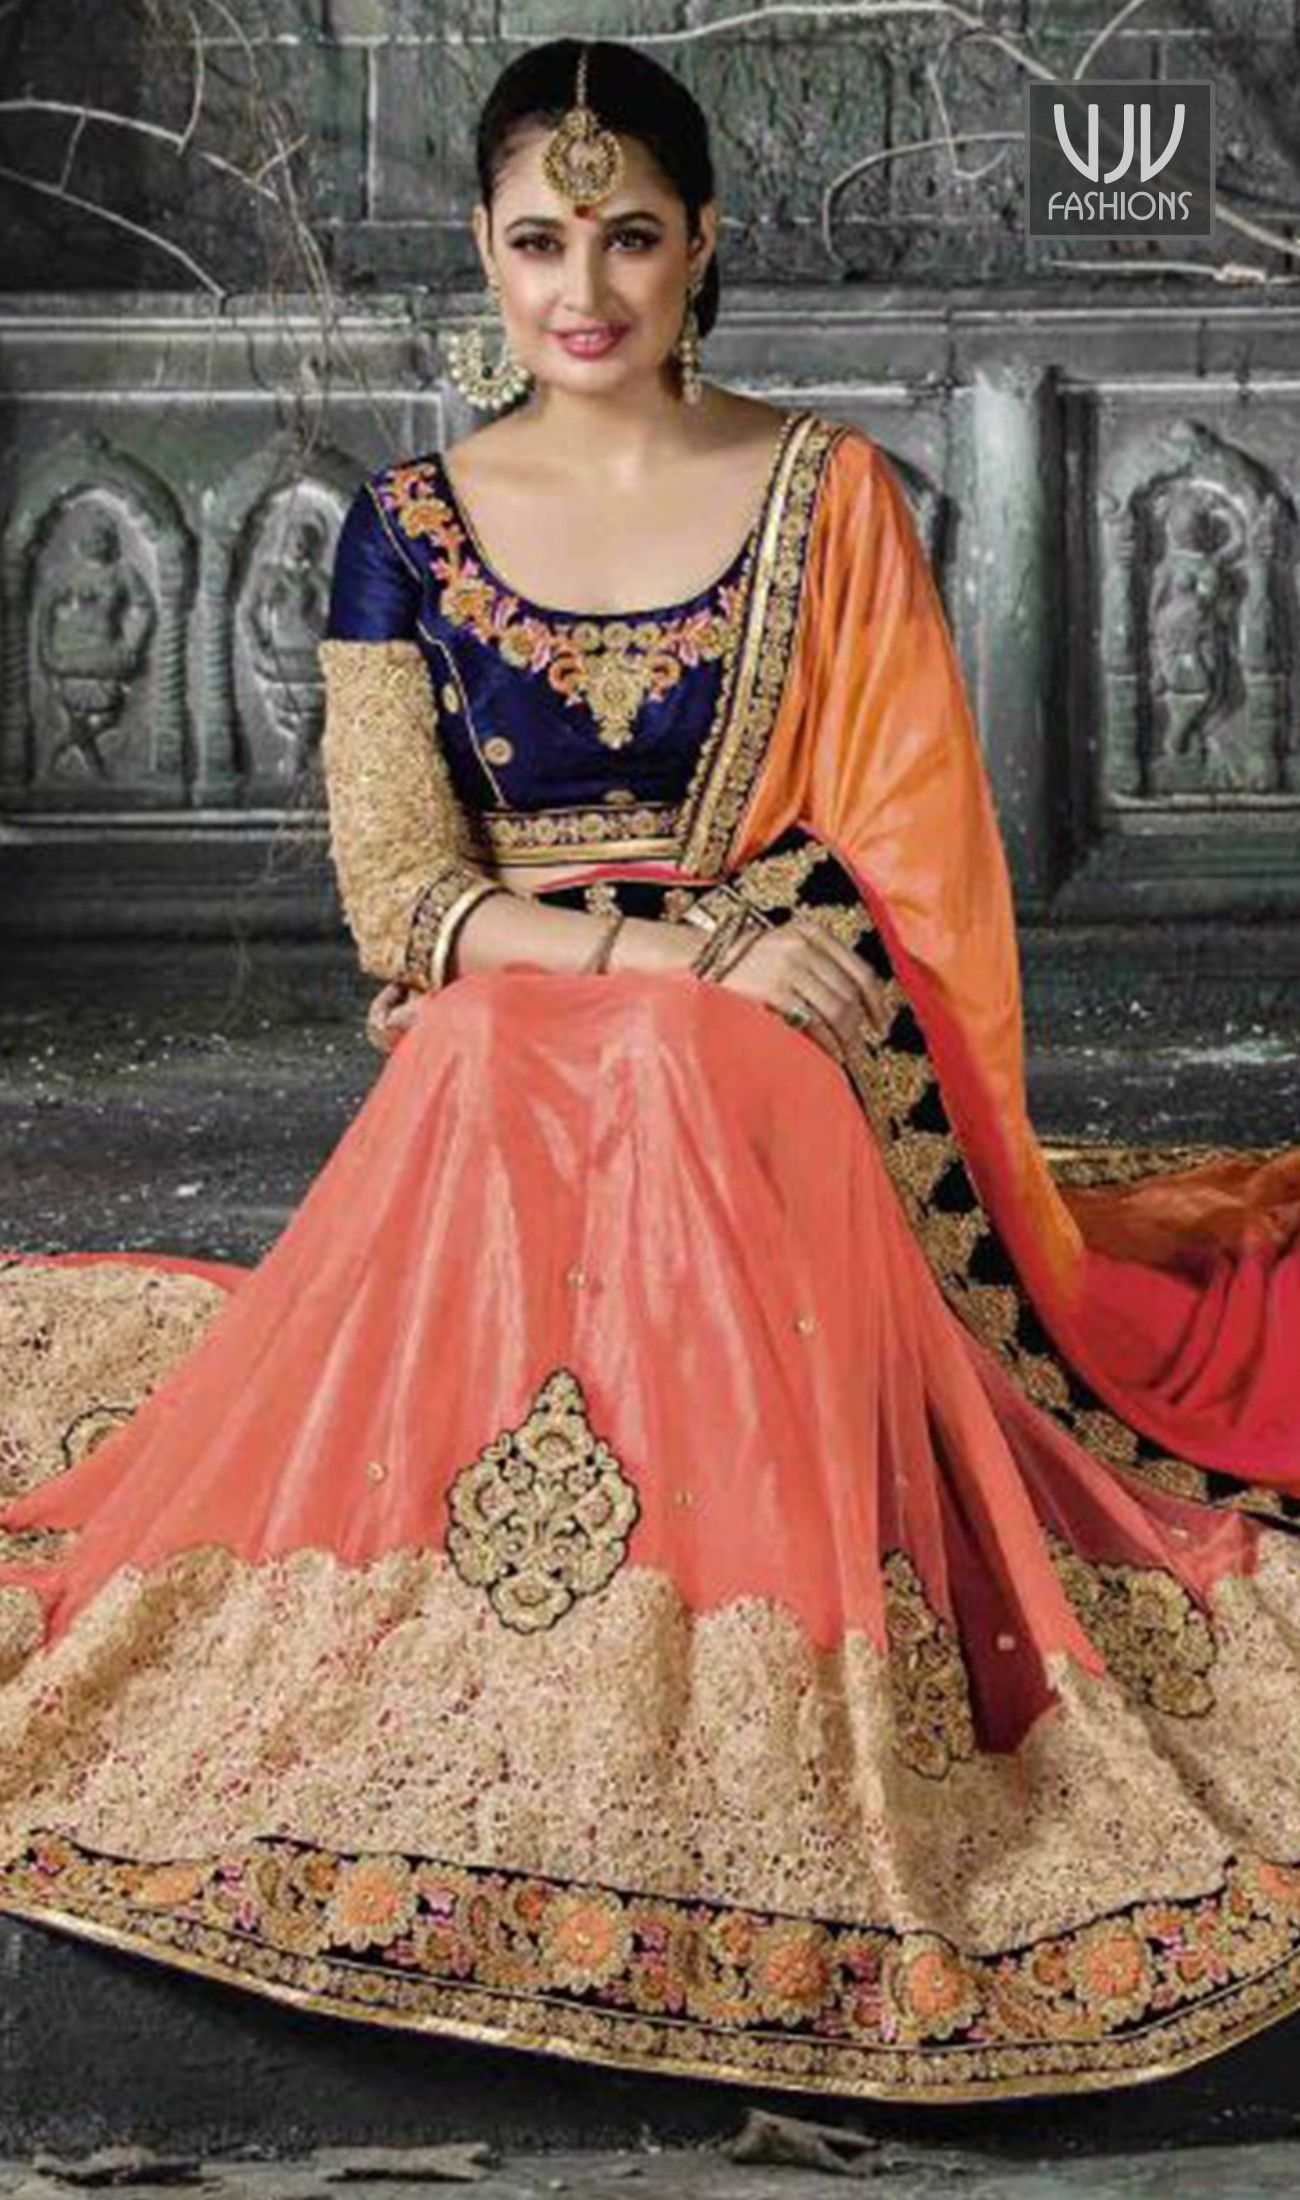 fe1e76a37a Buy Online Stylish Designer Casual Saree, Embroidered Saree, and Party Wear  occasion special Stylish New sarees at vjv Fashions. Shop Designer wedding